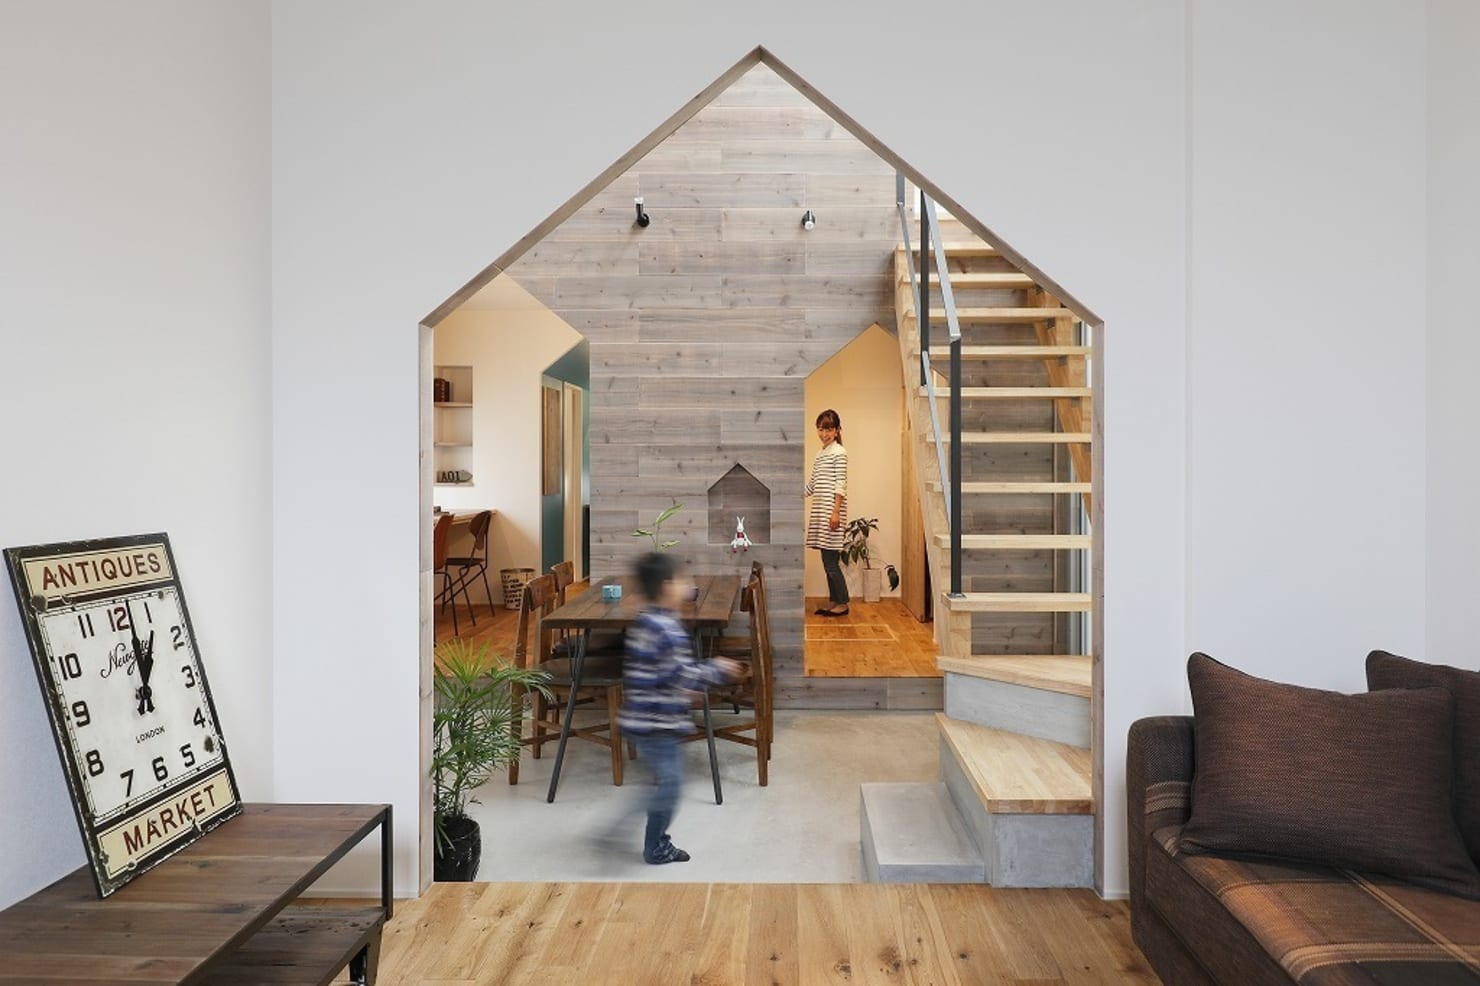 The playful Japanese home built for a family